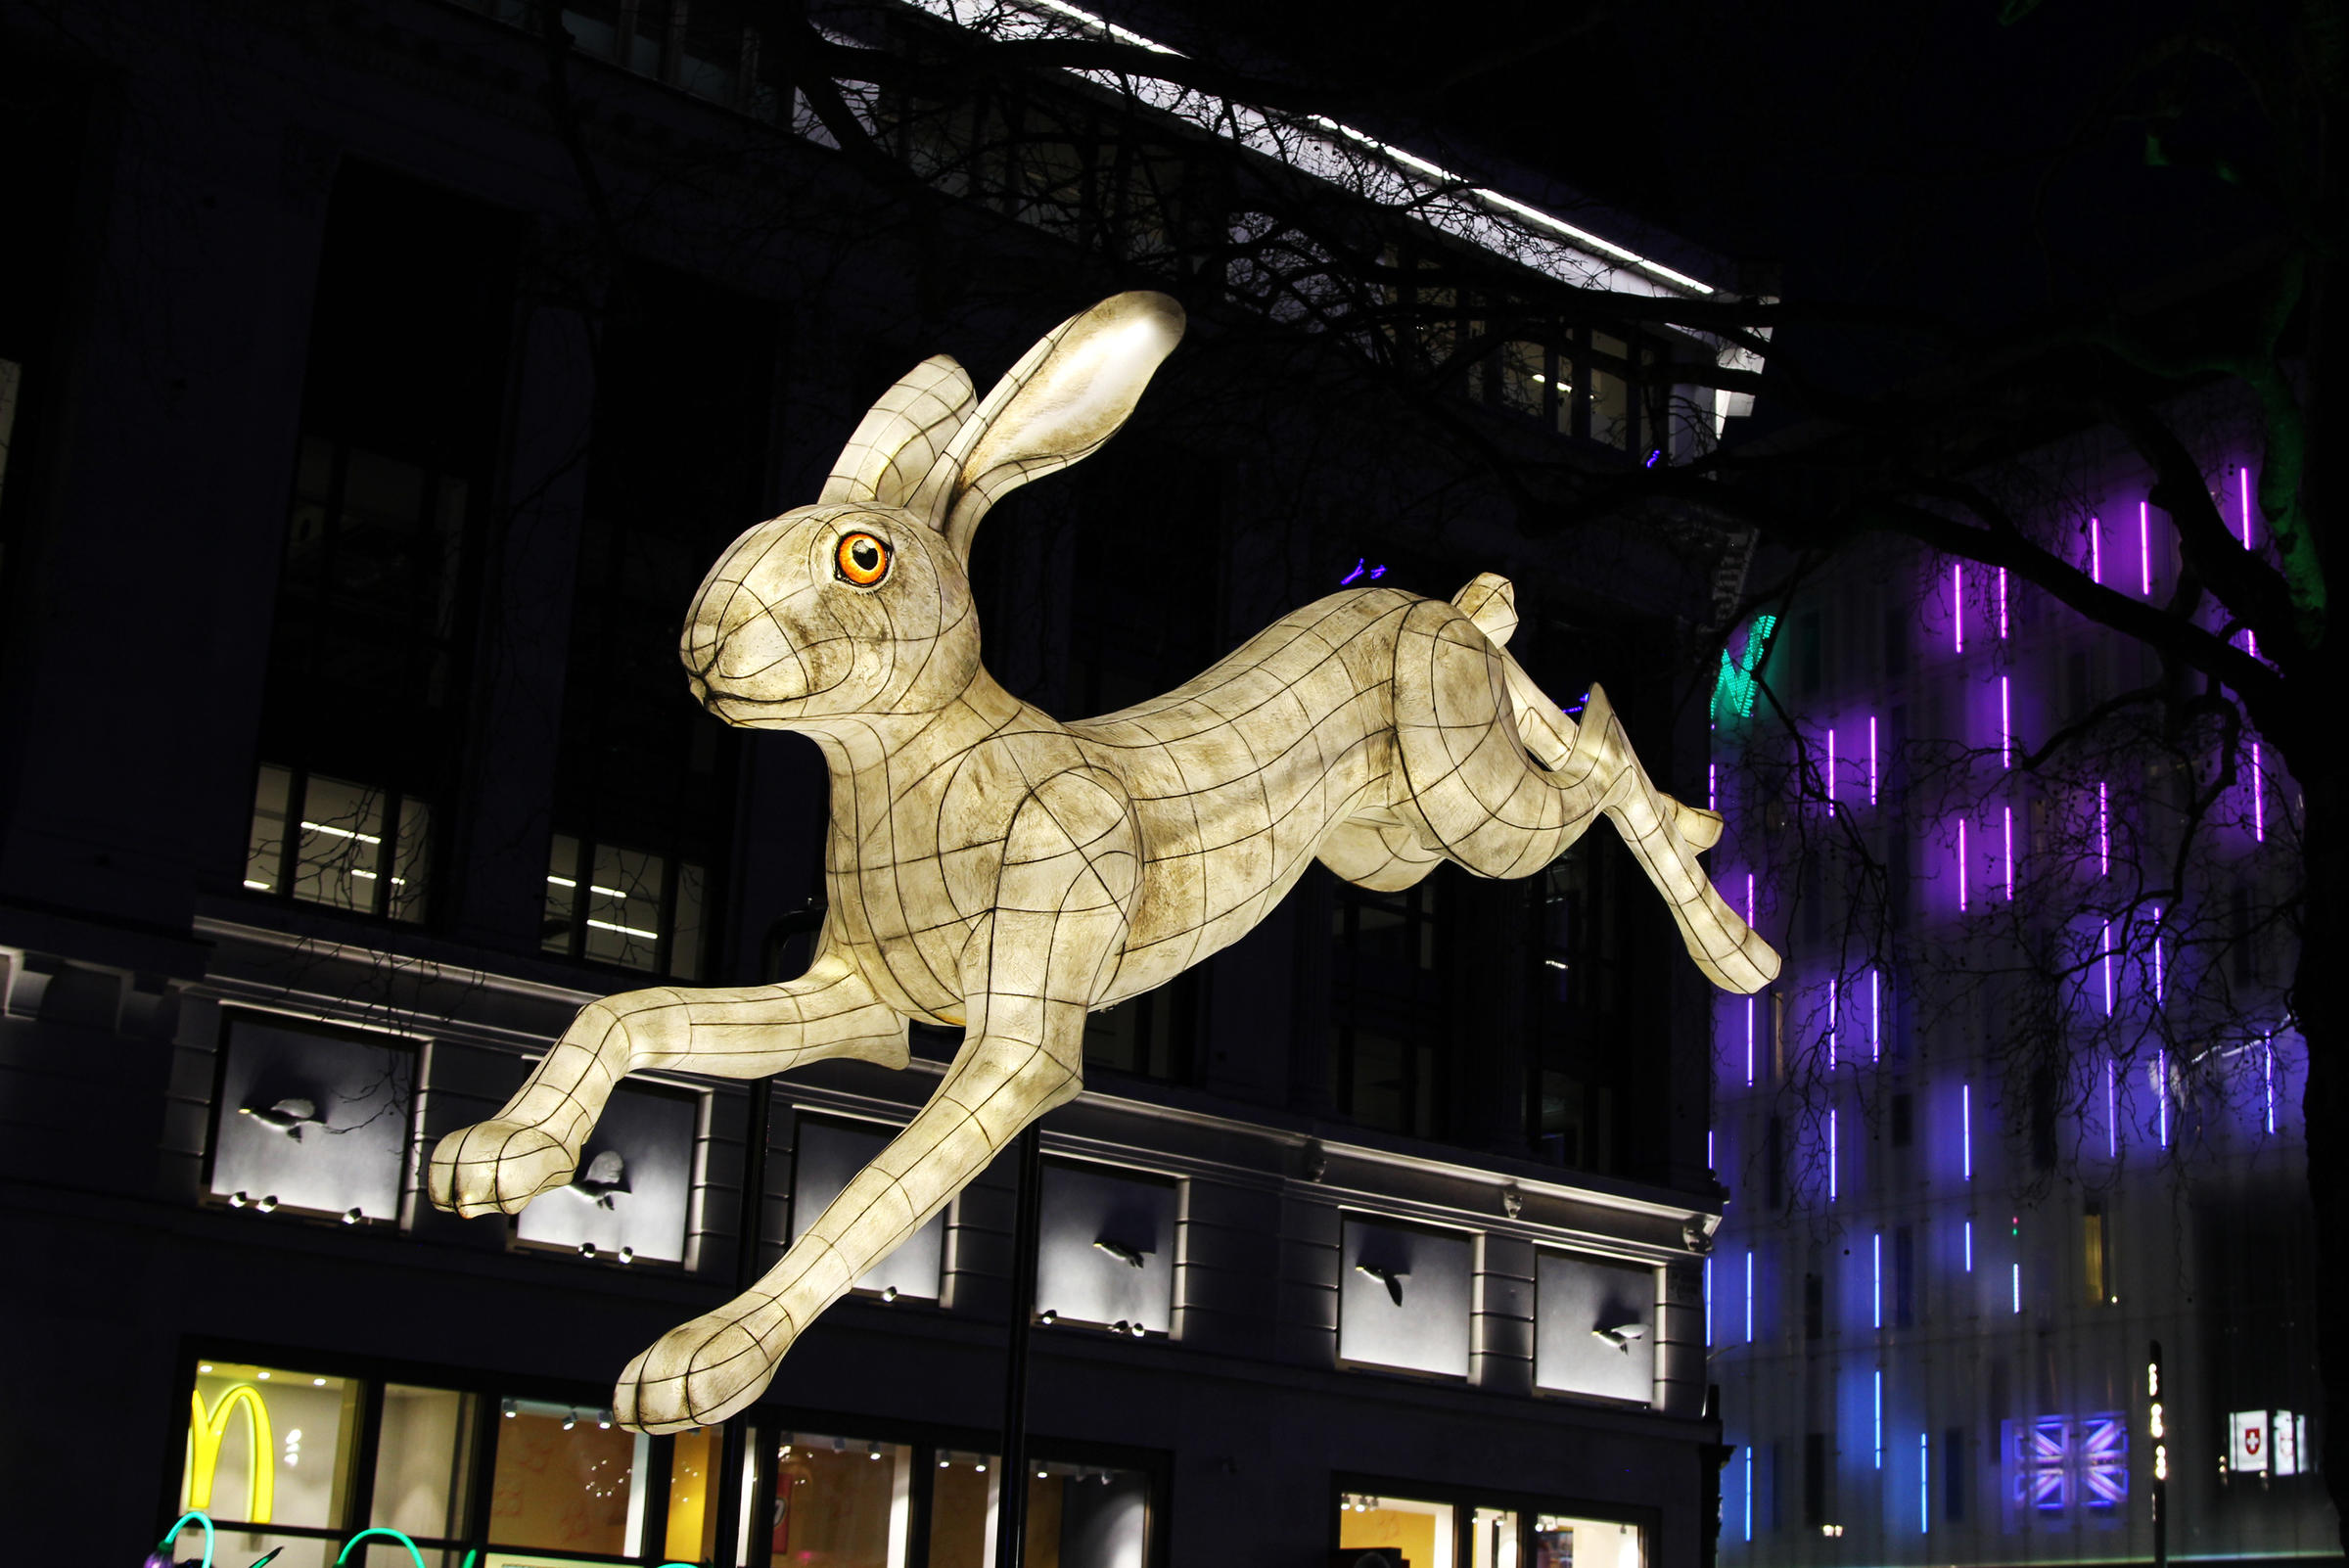 Lumiere London 2018 lights up the capital with interactive art